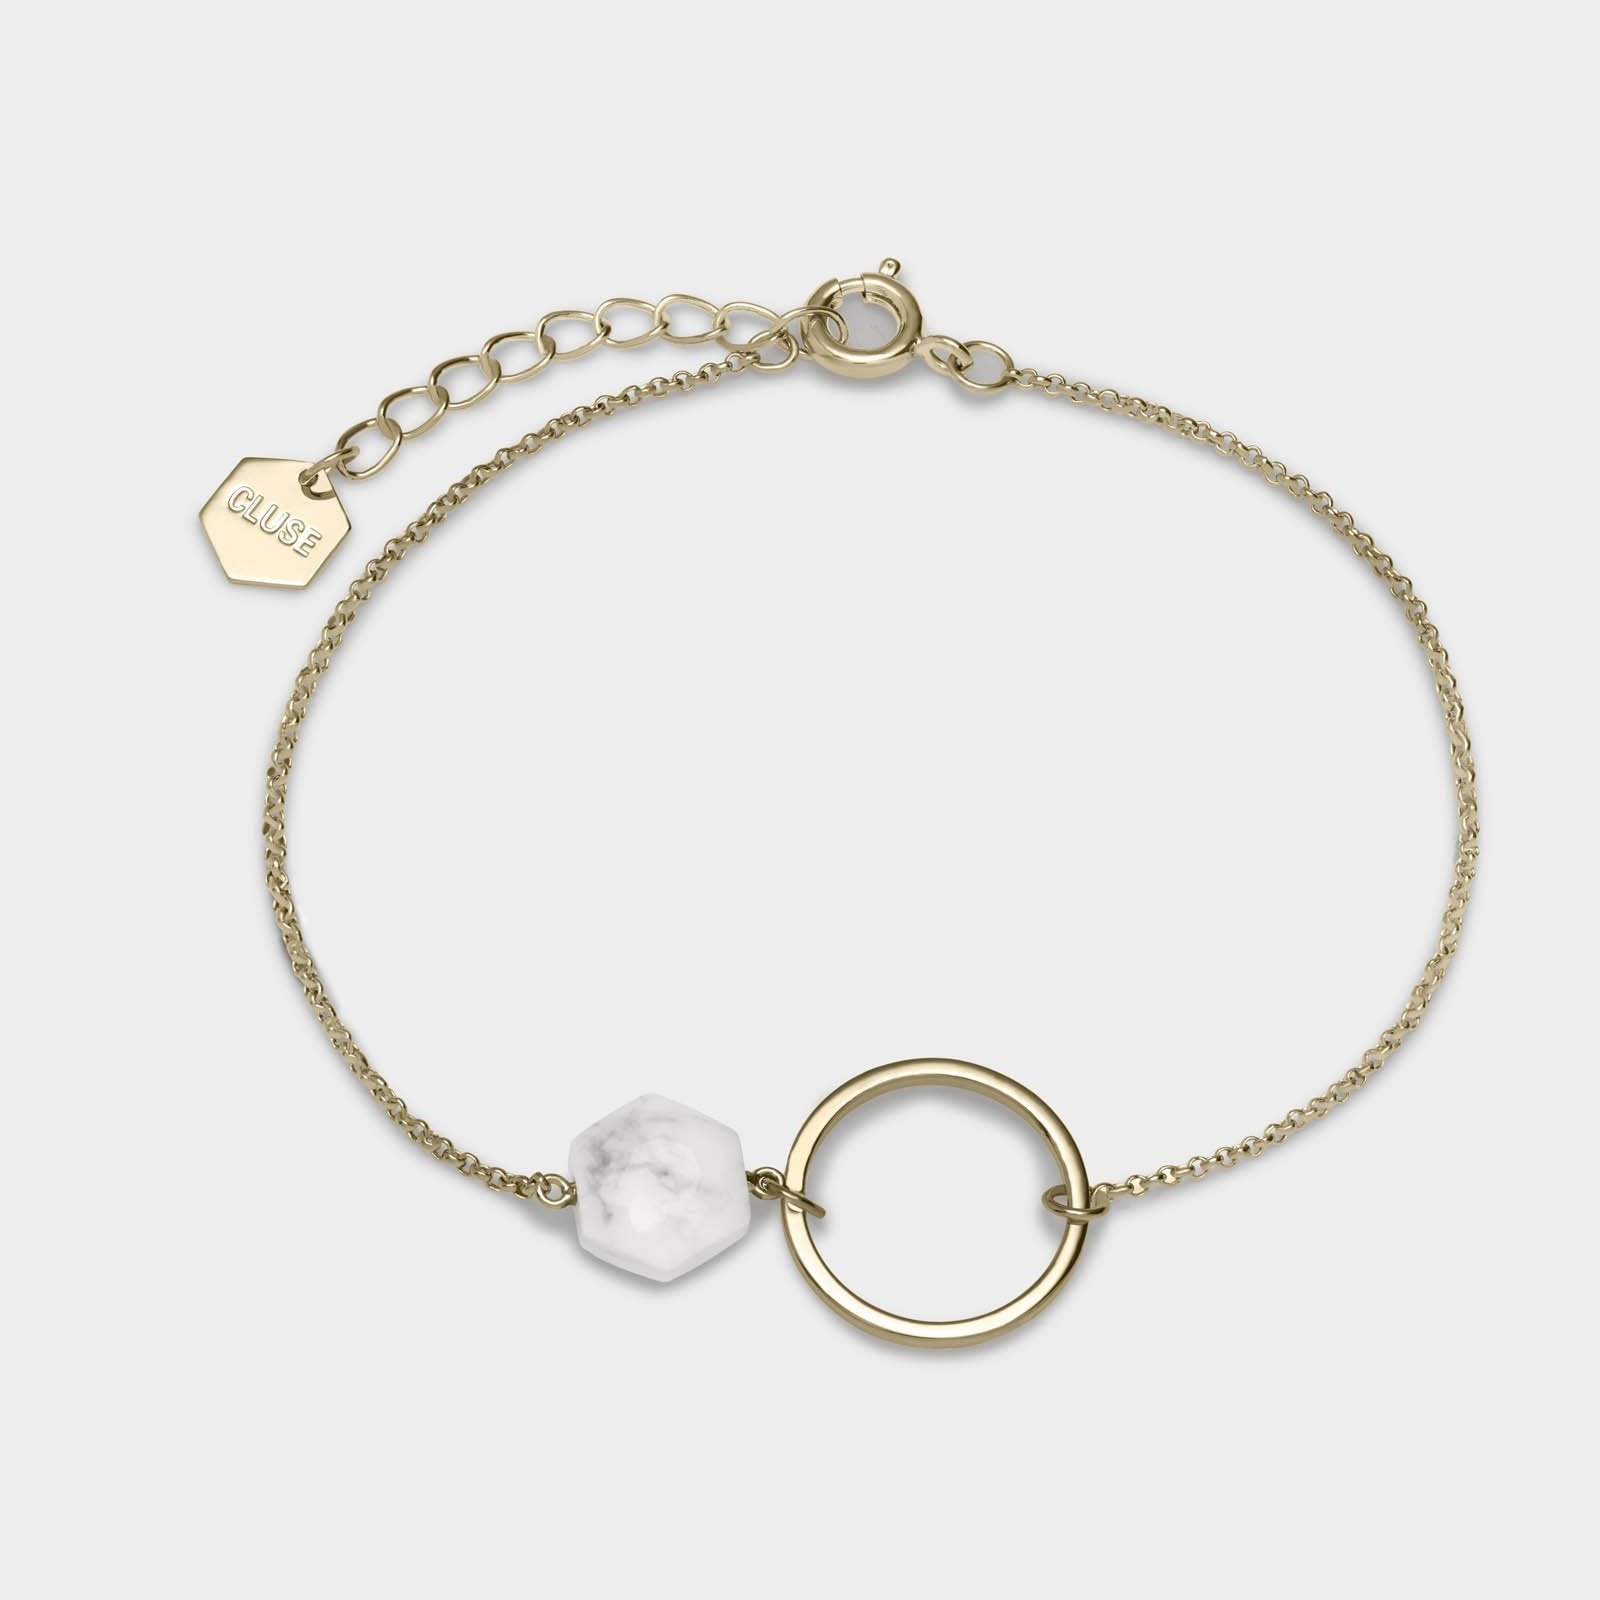 CLUSE Idylle Gold Open Circle Marble Hexagon Chain Bracelet CLJ11008 - Bracciale